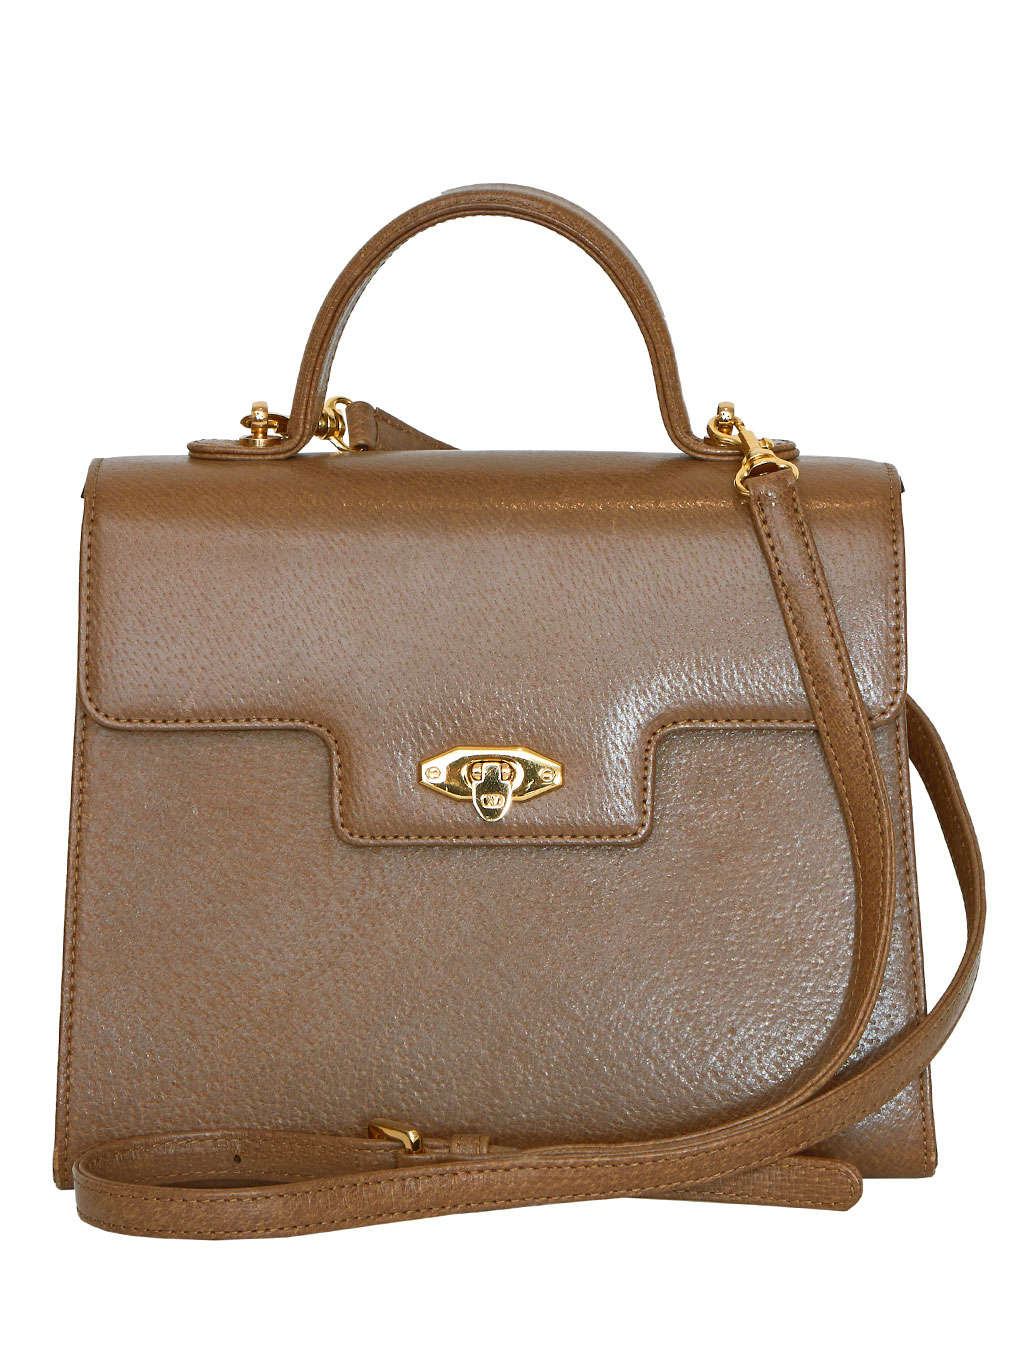 Valentino garavani 2WAY SHOULDER BAG